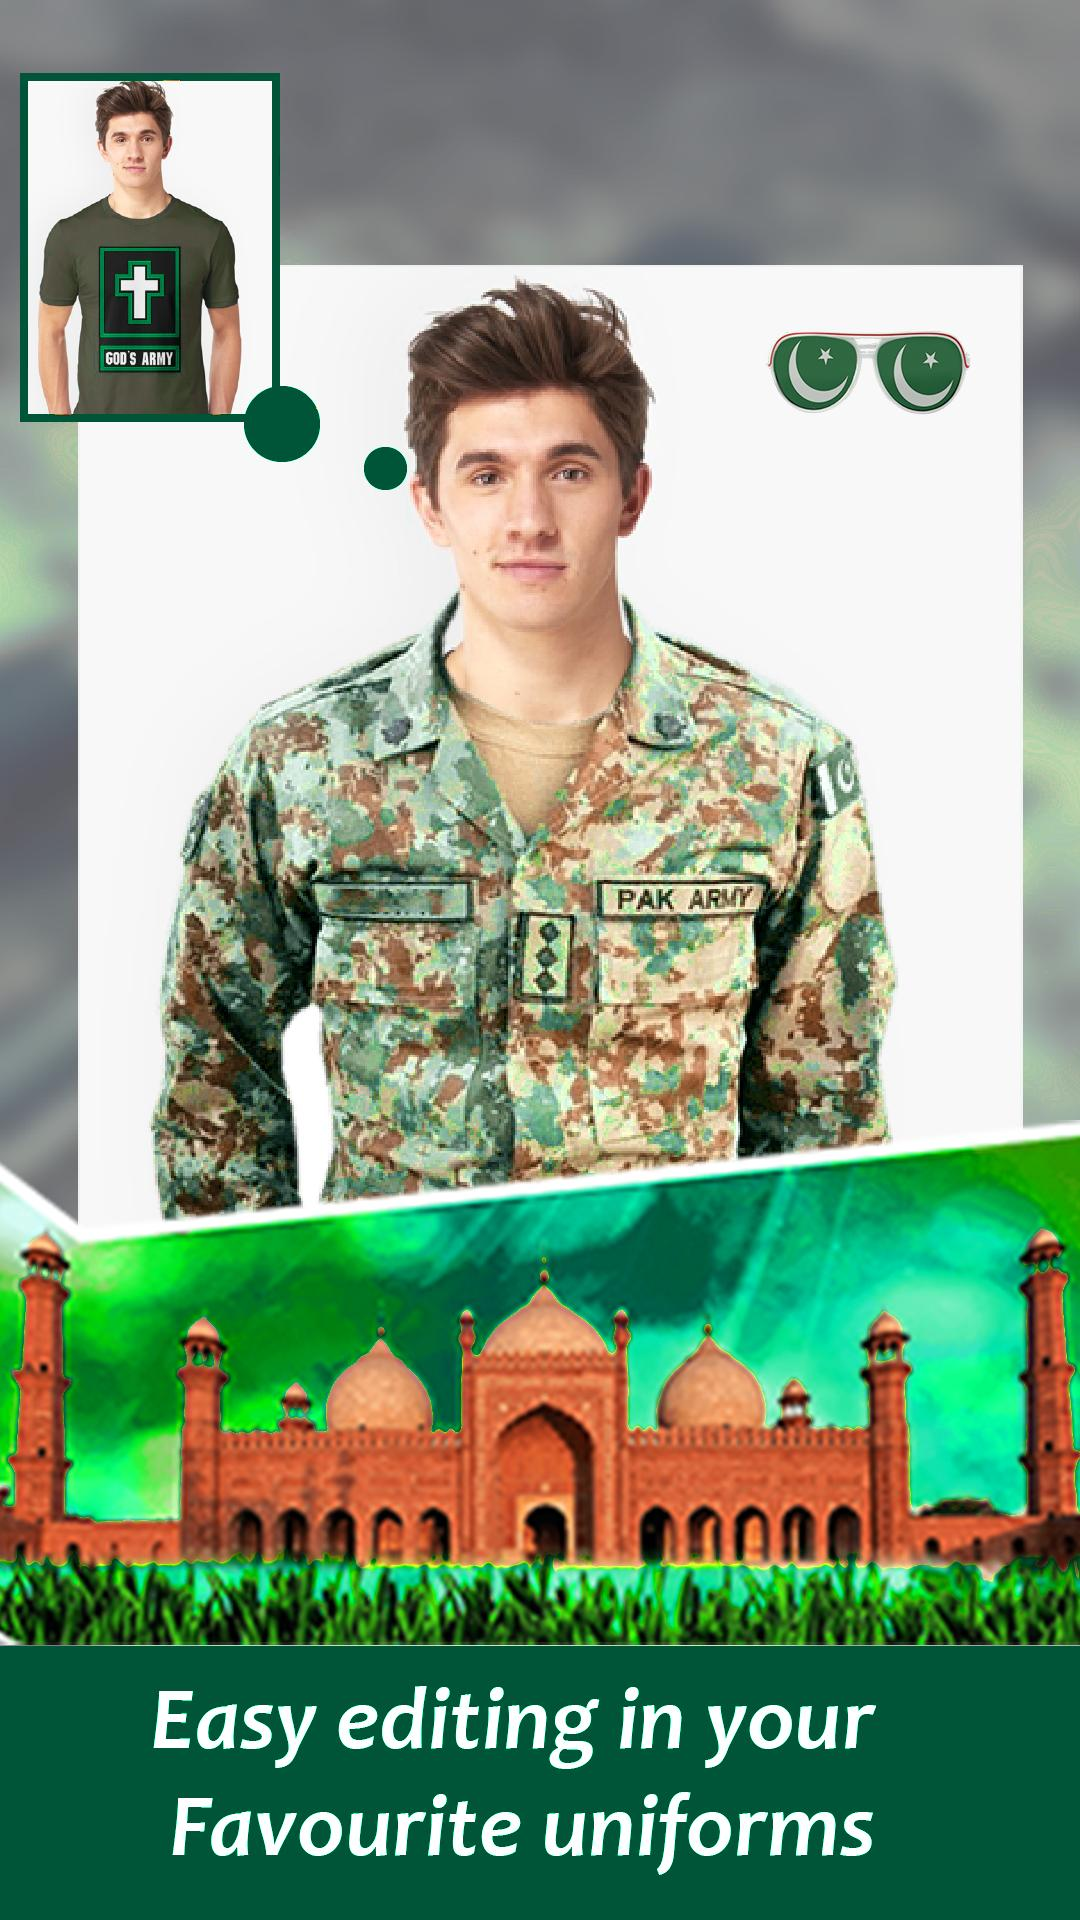 Pak Army Suit Photo Editor 2019 for Android - APK Download